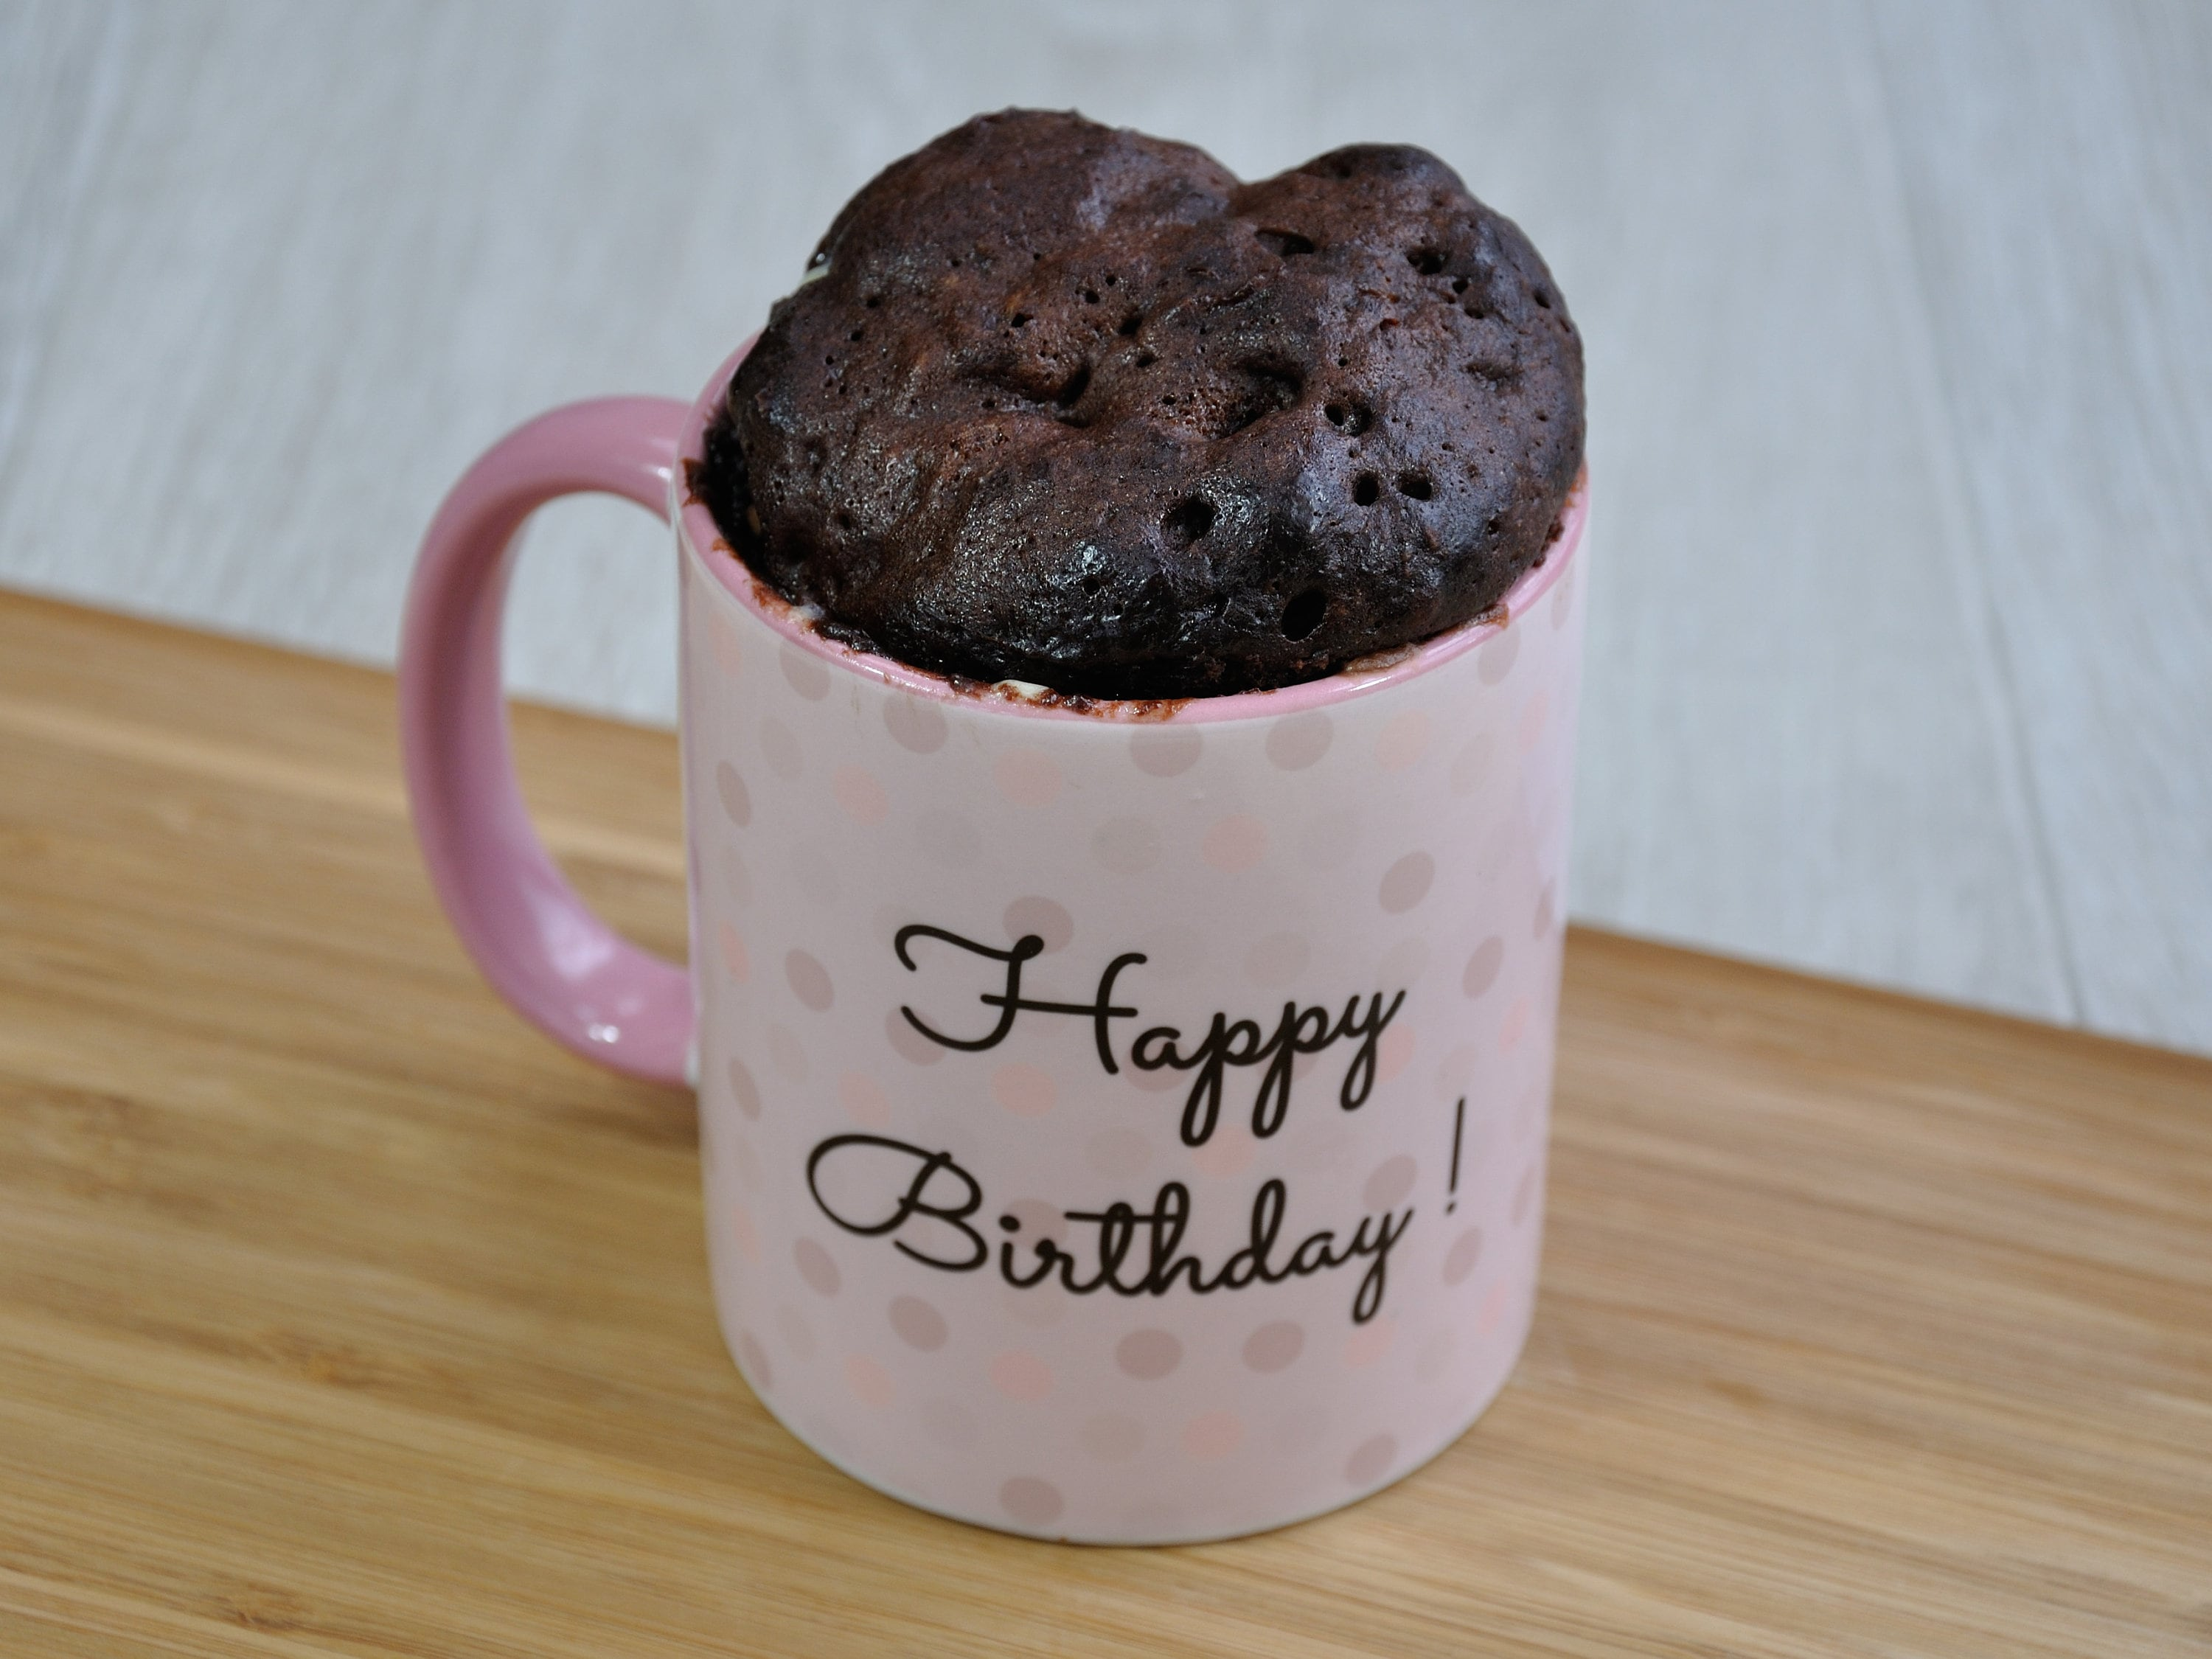 VEGAN Cake Gift Baking Kit Happy Birthday Mug For Him Her Microwave Chocoholic